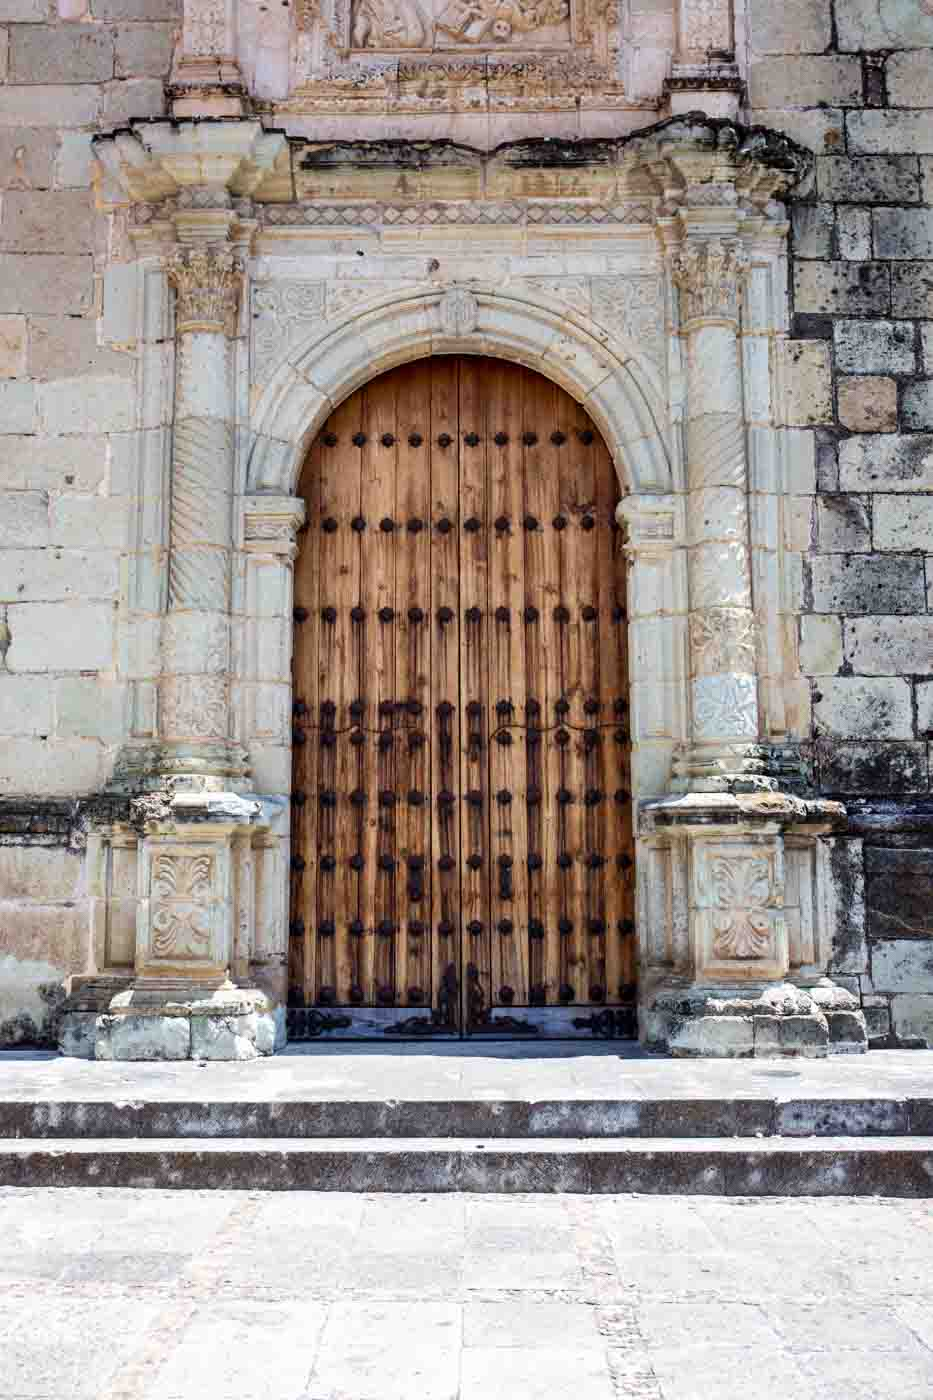 The Doors of Oaxaca